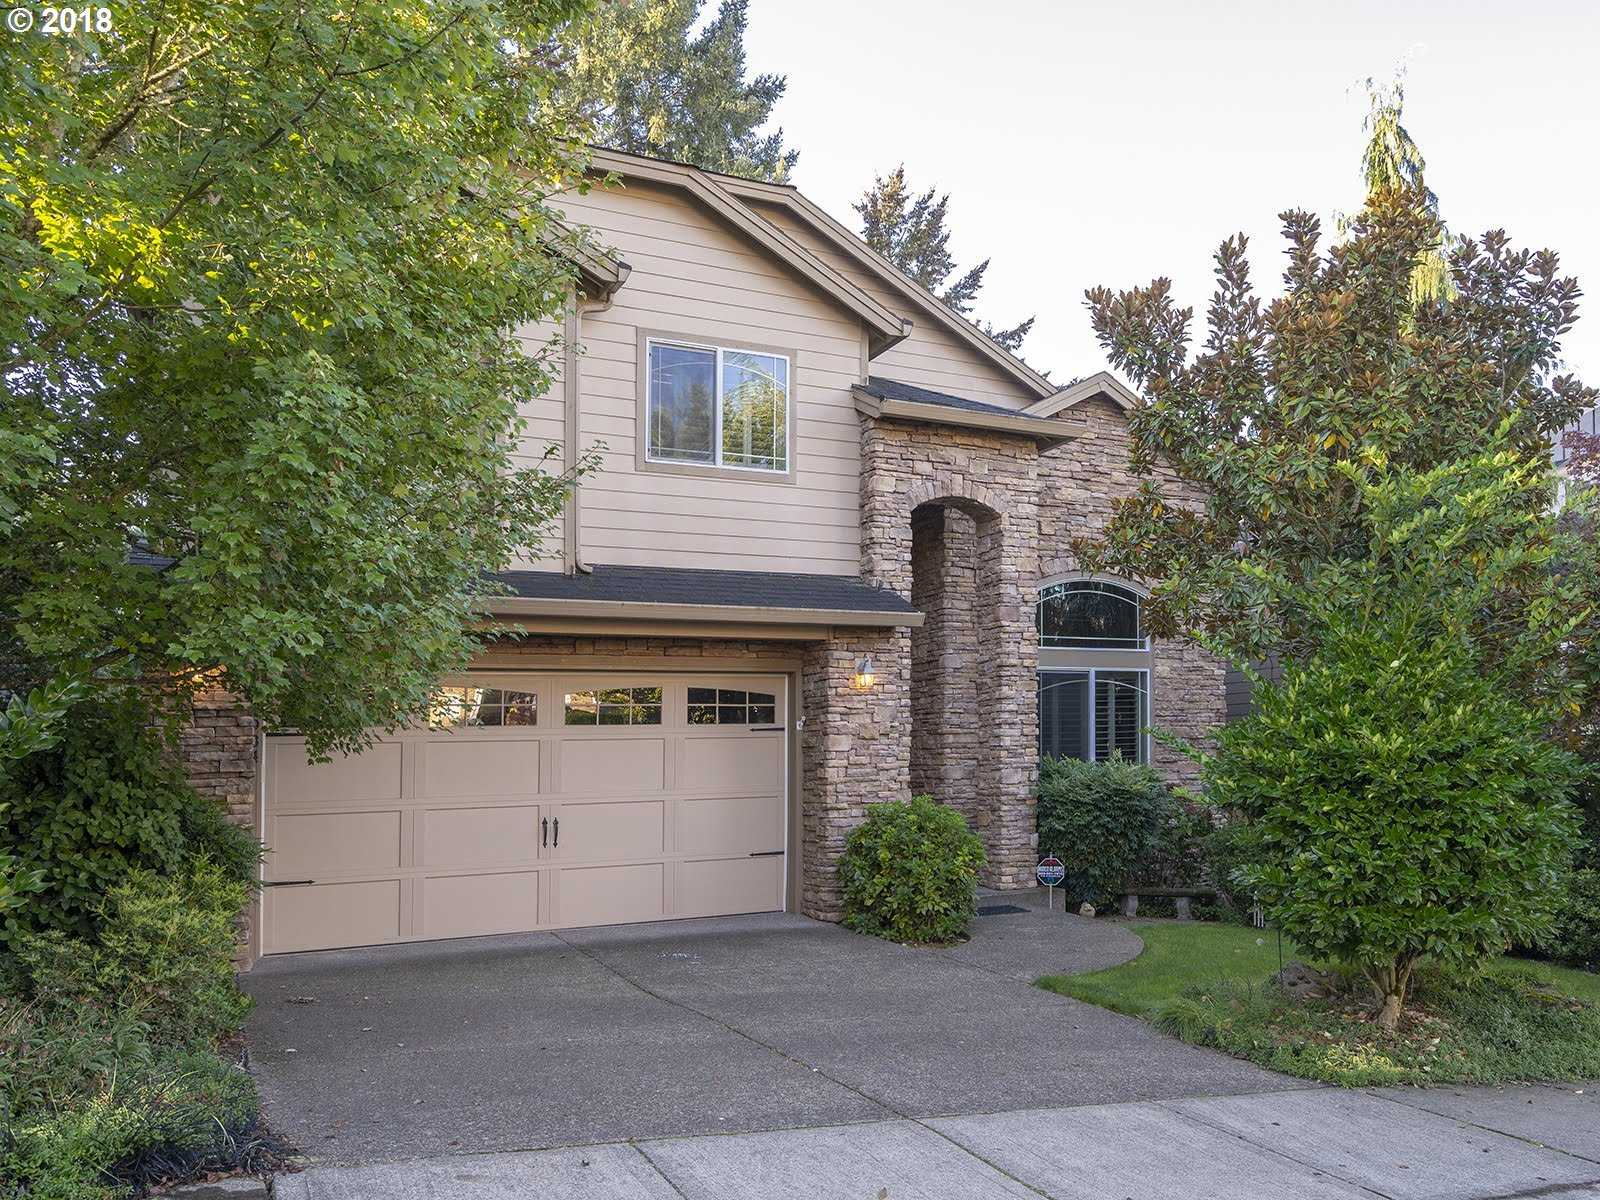 $524,000 - 4Br/3Ba -  for Sale in Valley View, Tigard